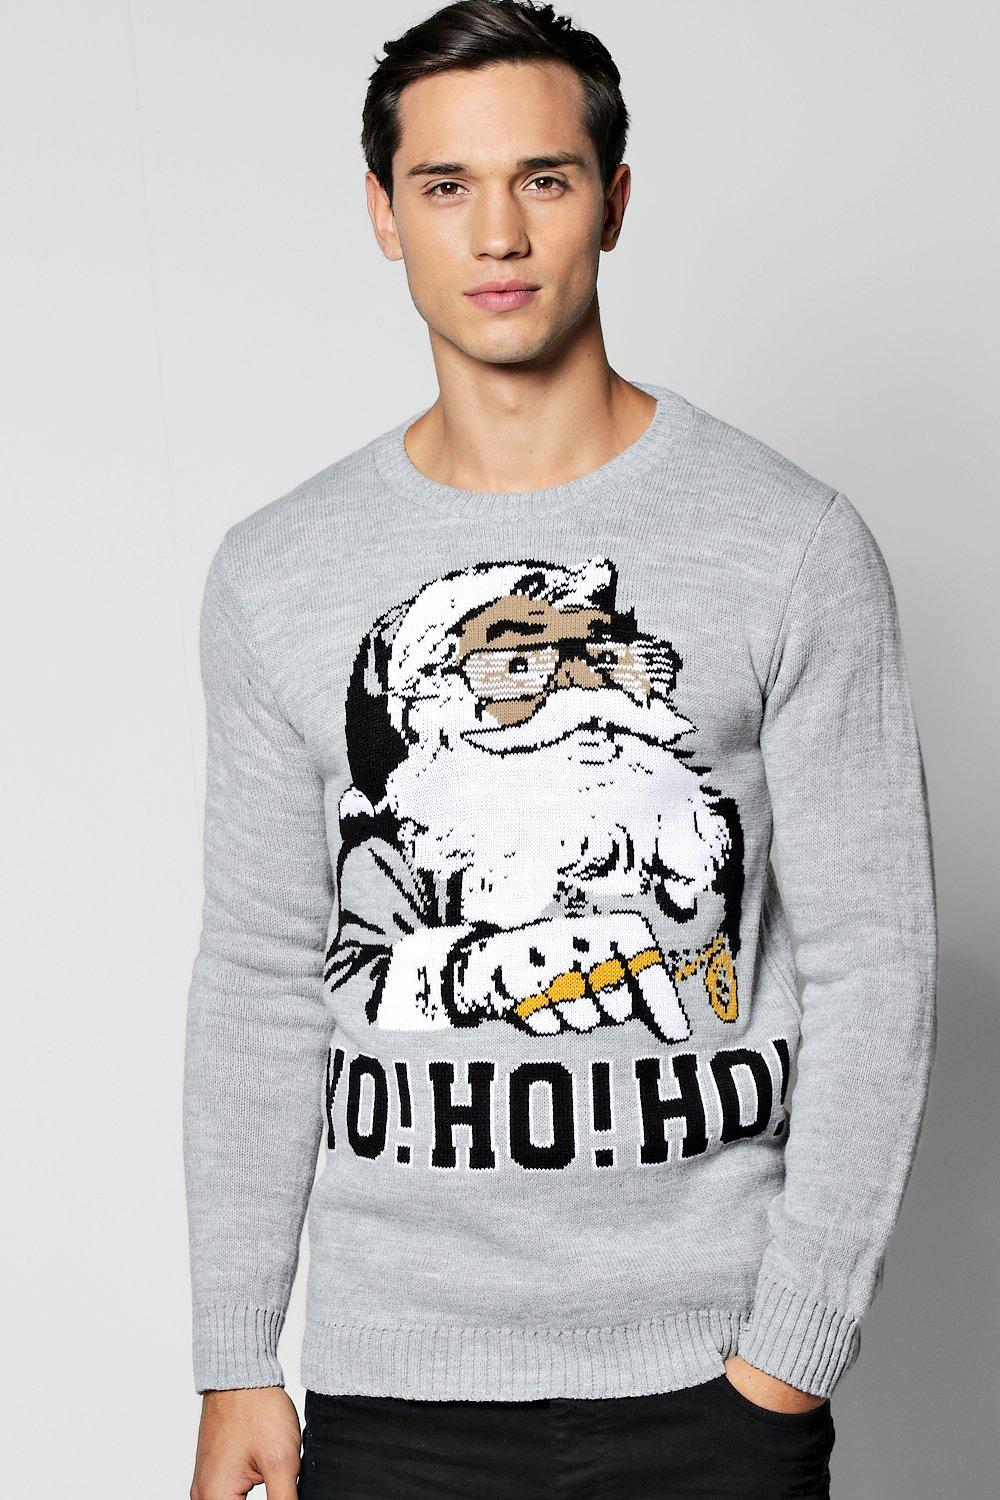 Yo! Ho! Ho! Christmas Jumper